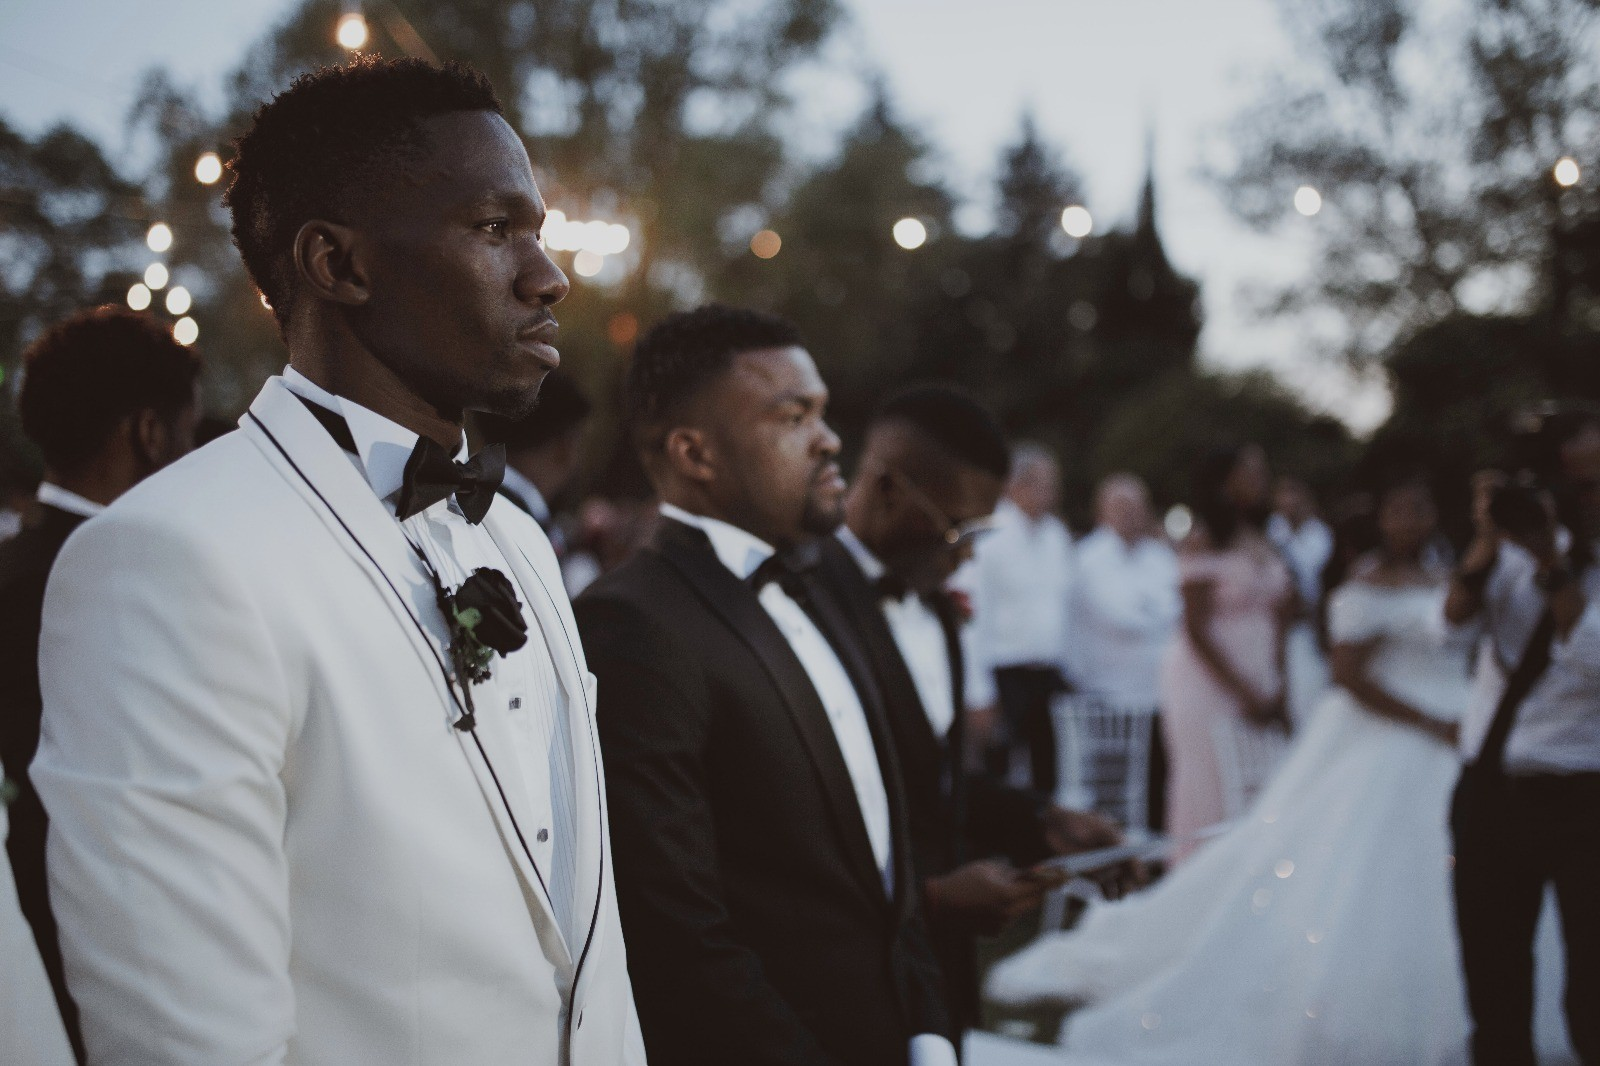 5afbbfe134d8f - Photos From Kenneth Omeruo's White Wedding In Istanbul, Turkey